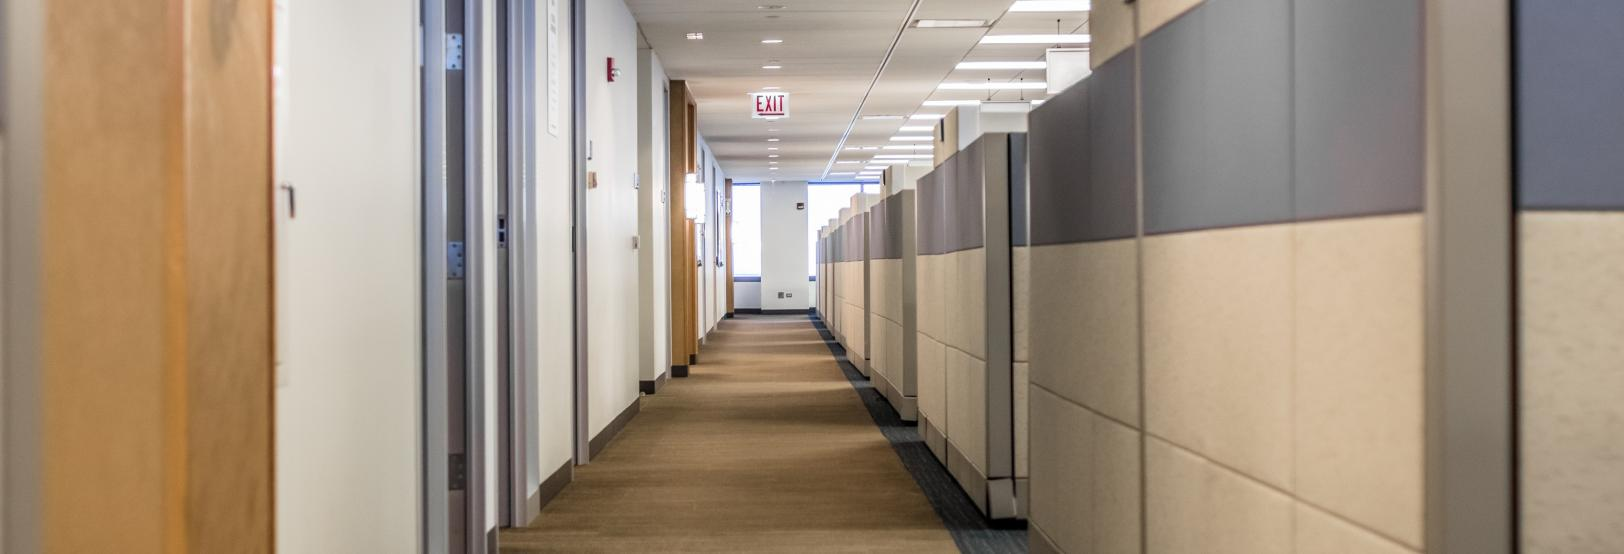 rows of cubicles